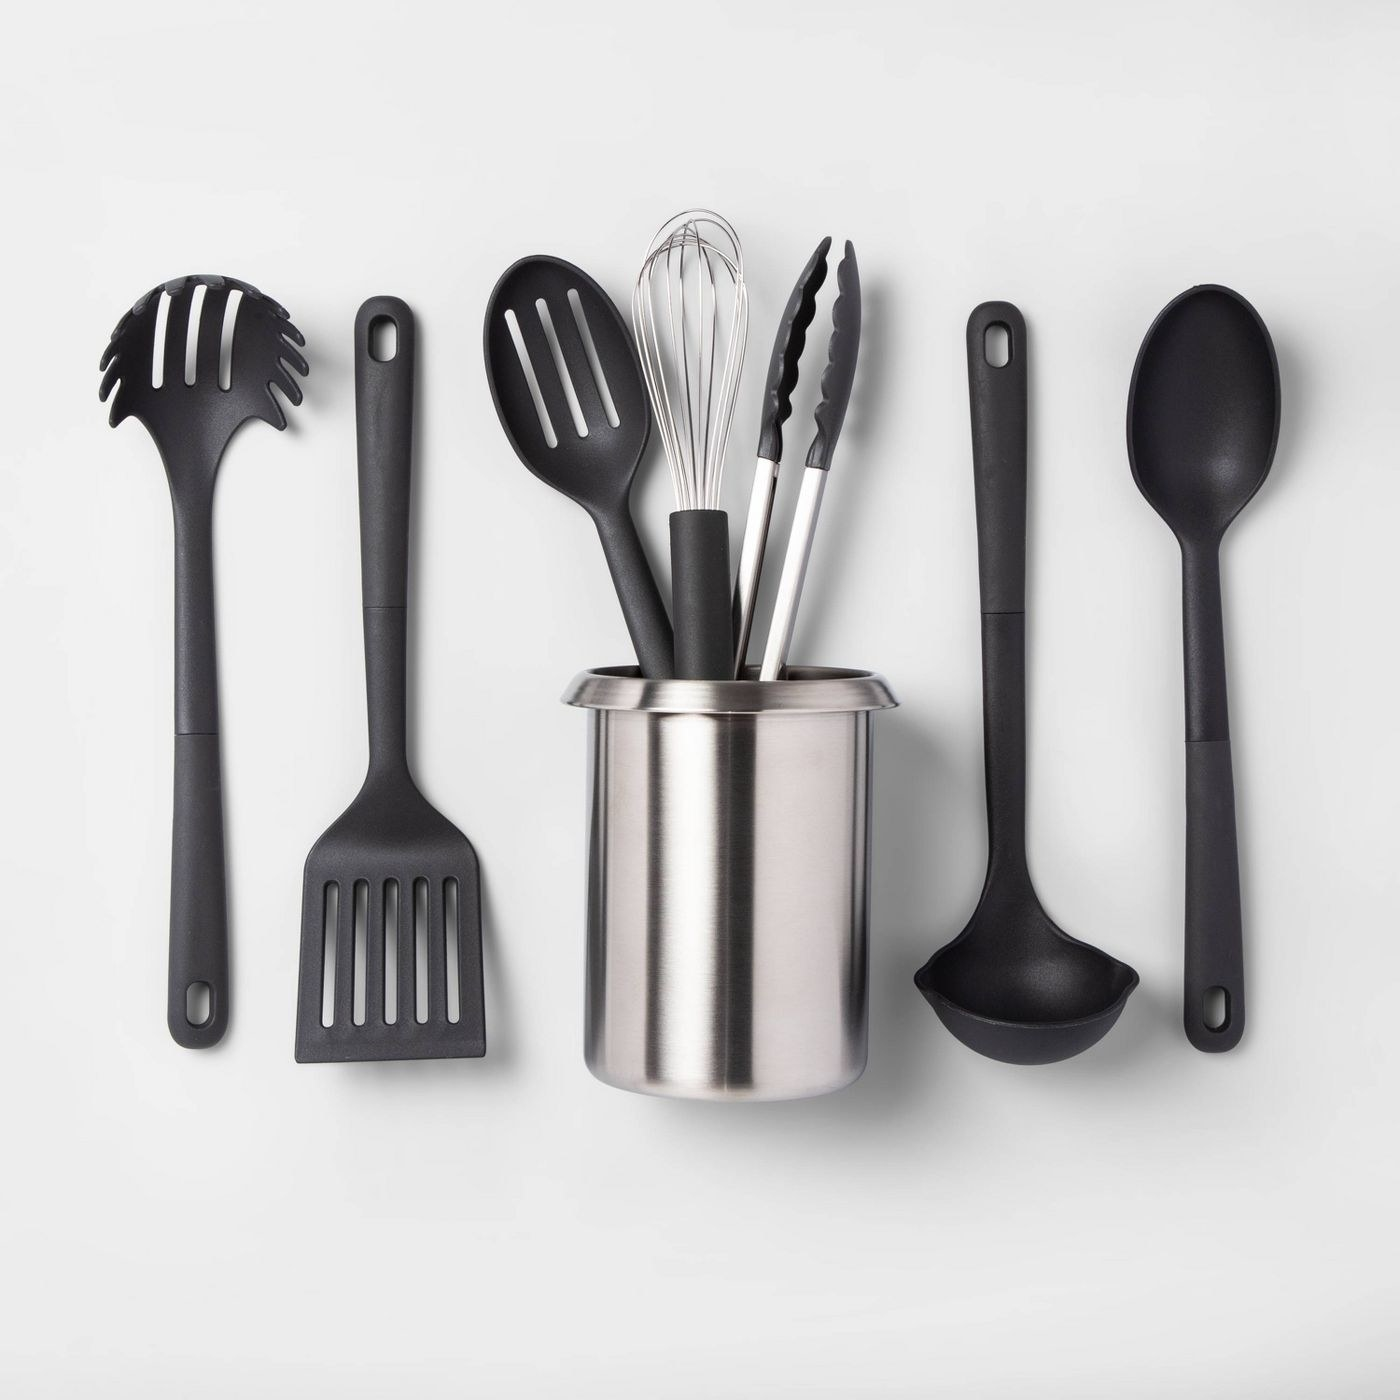 The kitchen utensil set